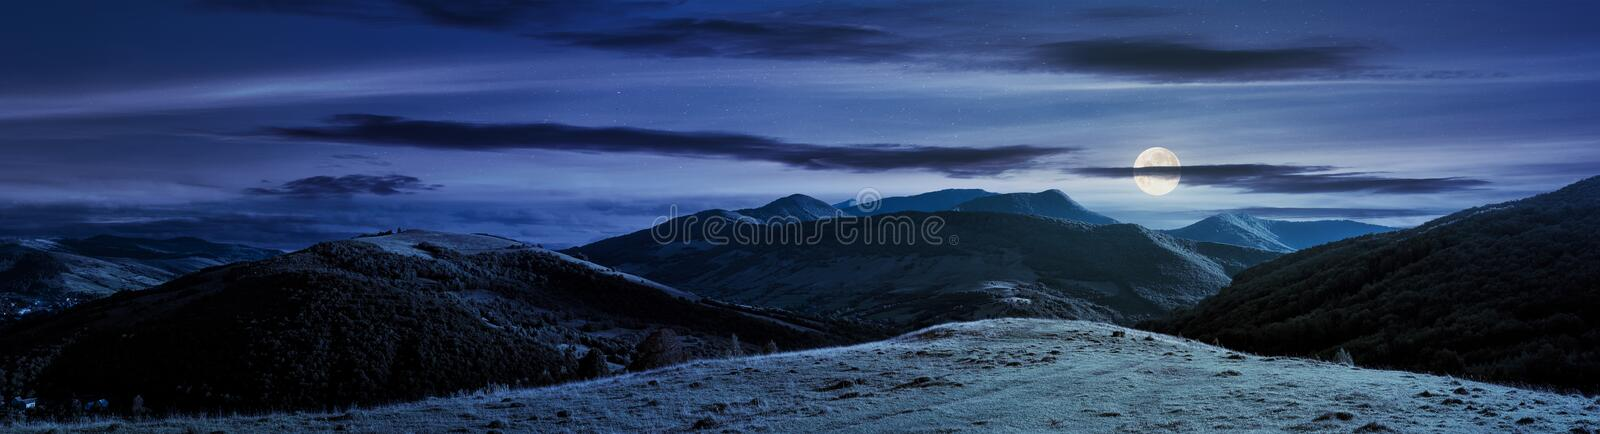 Panorama of mountainous countryside at night stock photography